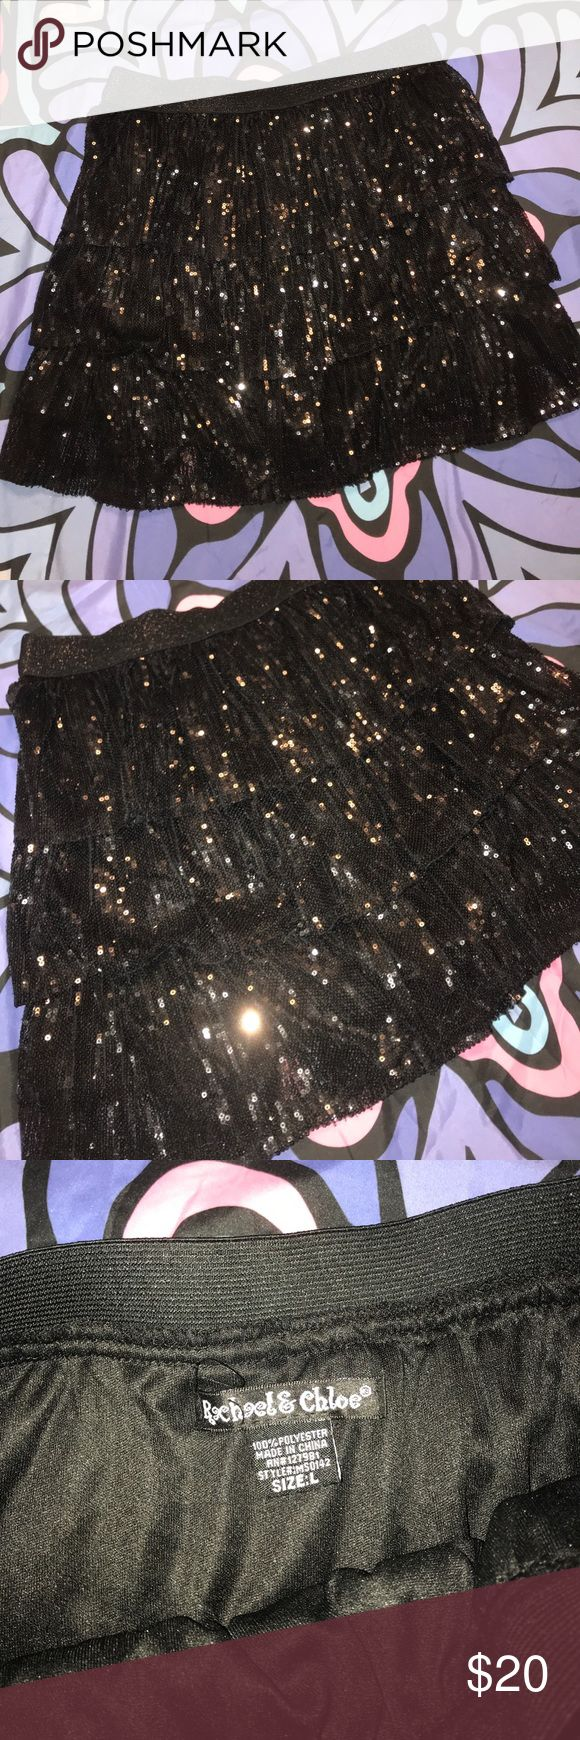 Sparkle Mini Skirt Black sequins mini skirt, brand new and never worn. Has a cute lil ruffle style to it! The band is elastic so it has TONS of stretch. Tags: rag & bone nasty gal UNIF dollskill American apparel Tobi Charlotte Russe h&m lf free people forever 21 Bebe dolls kill classy American Eagle Hollister billabong la Hearts Kendall and Kylie lf express John galt pacsun Charlotte Russe Skirts Mini